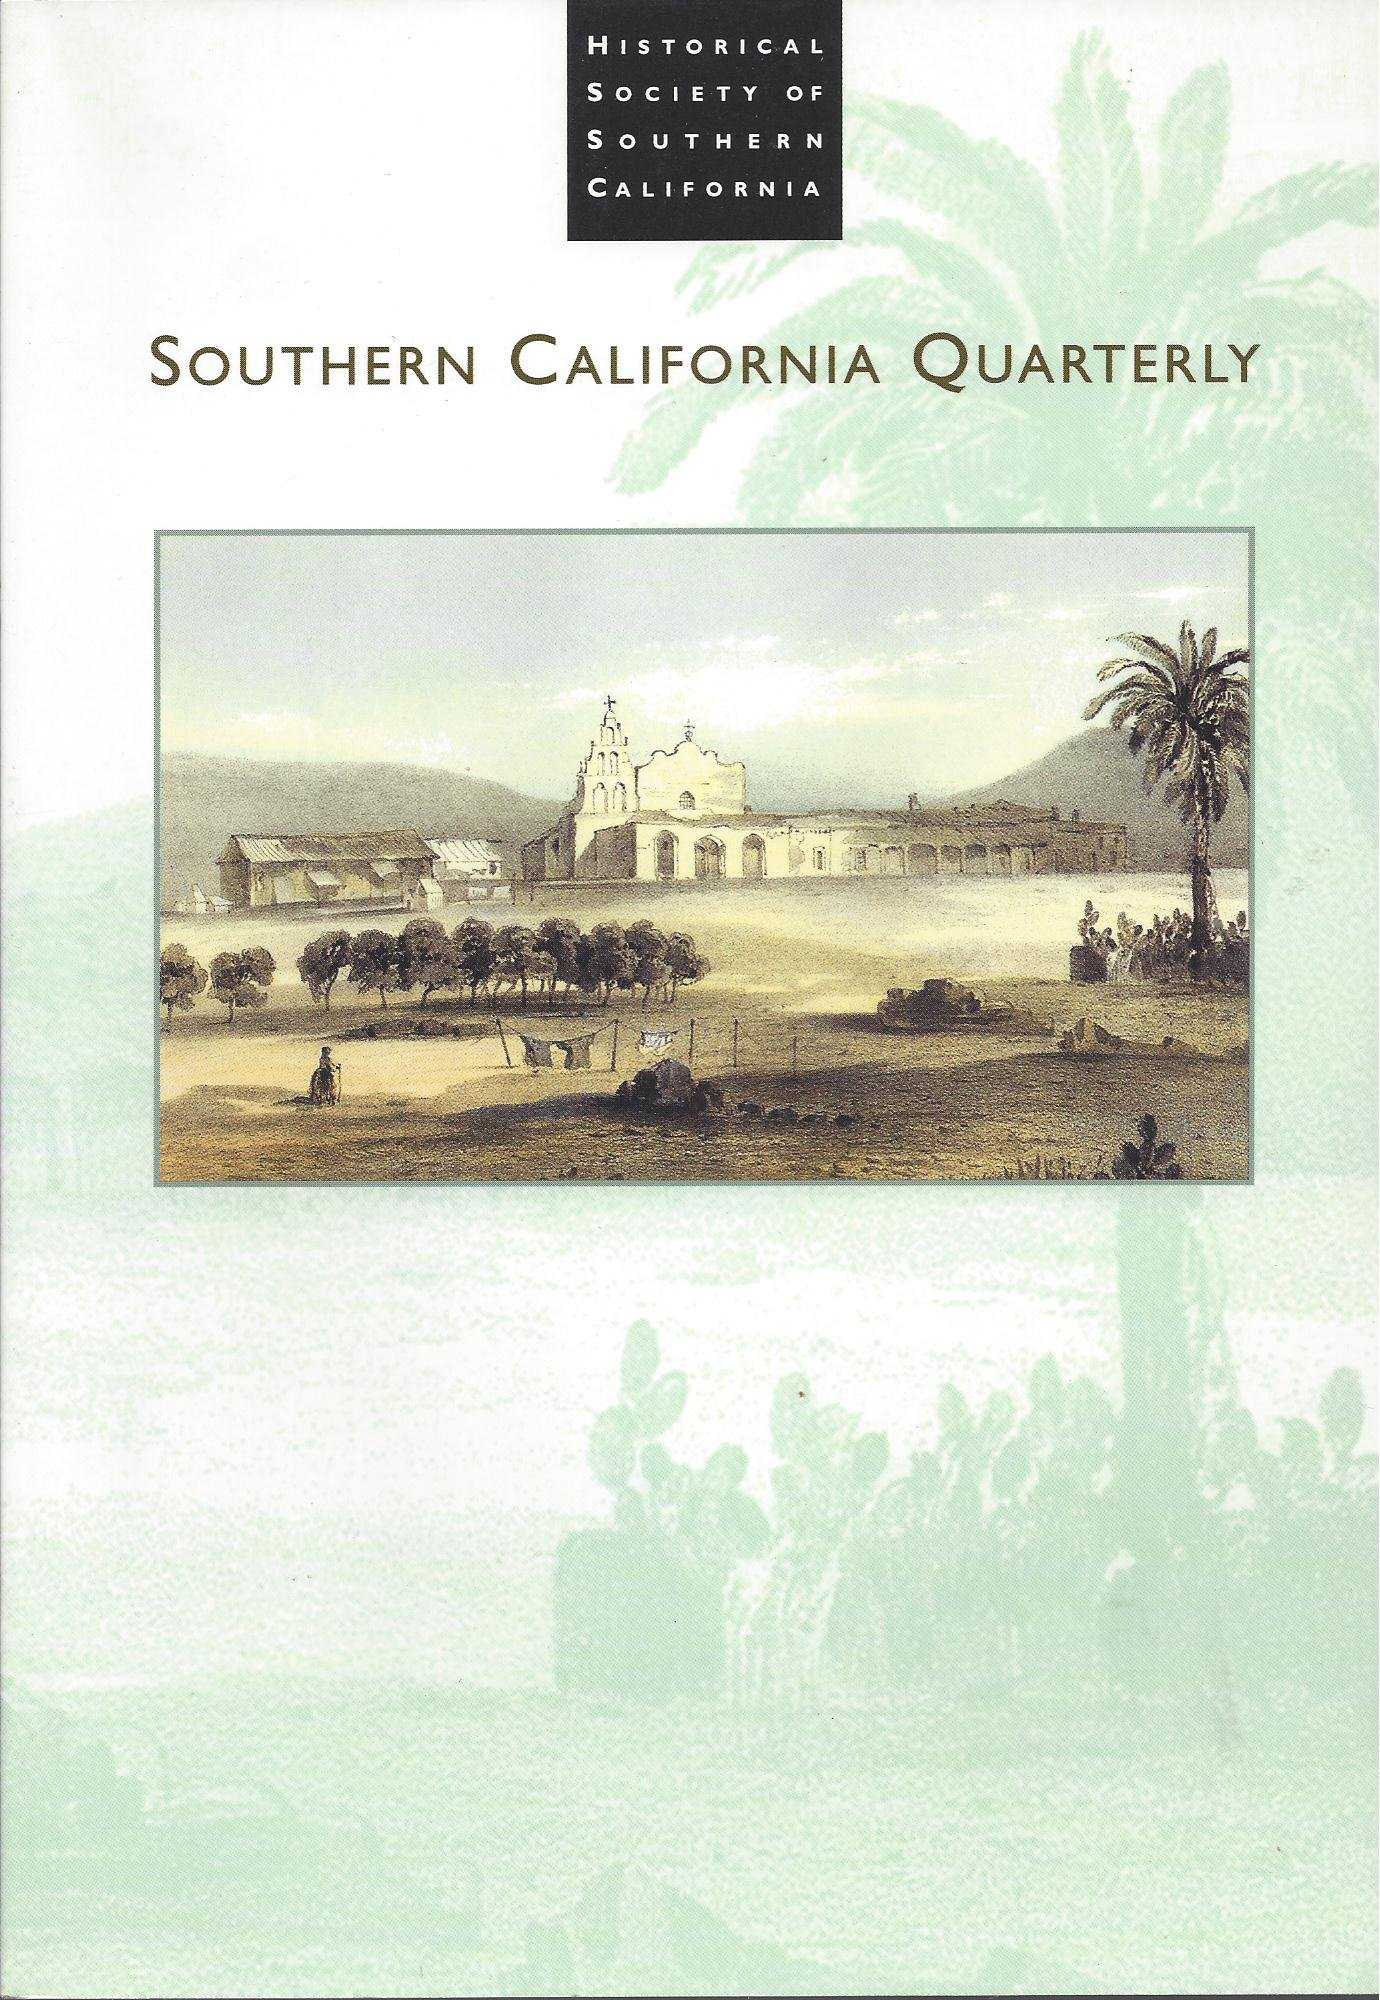 the architectural history of the california missions The architectural history of the california missions (1769-1823) you may already know that there are 21 missions today in the state of california starting in san diego all the way past san francisco, the missions remind us of an earlier time when the spanish were colonizing alta california.